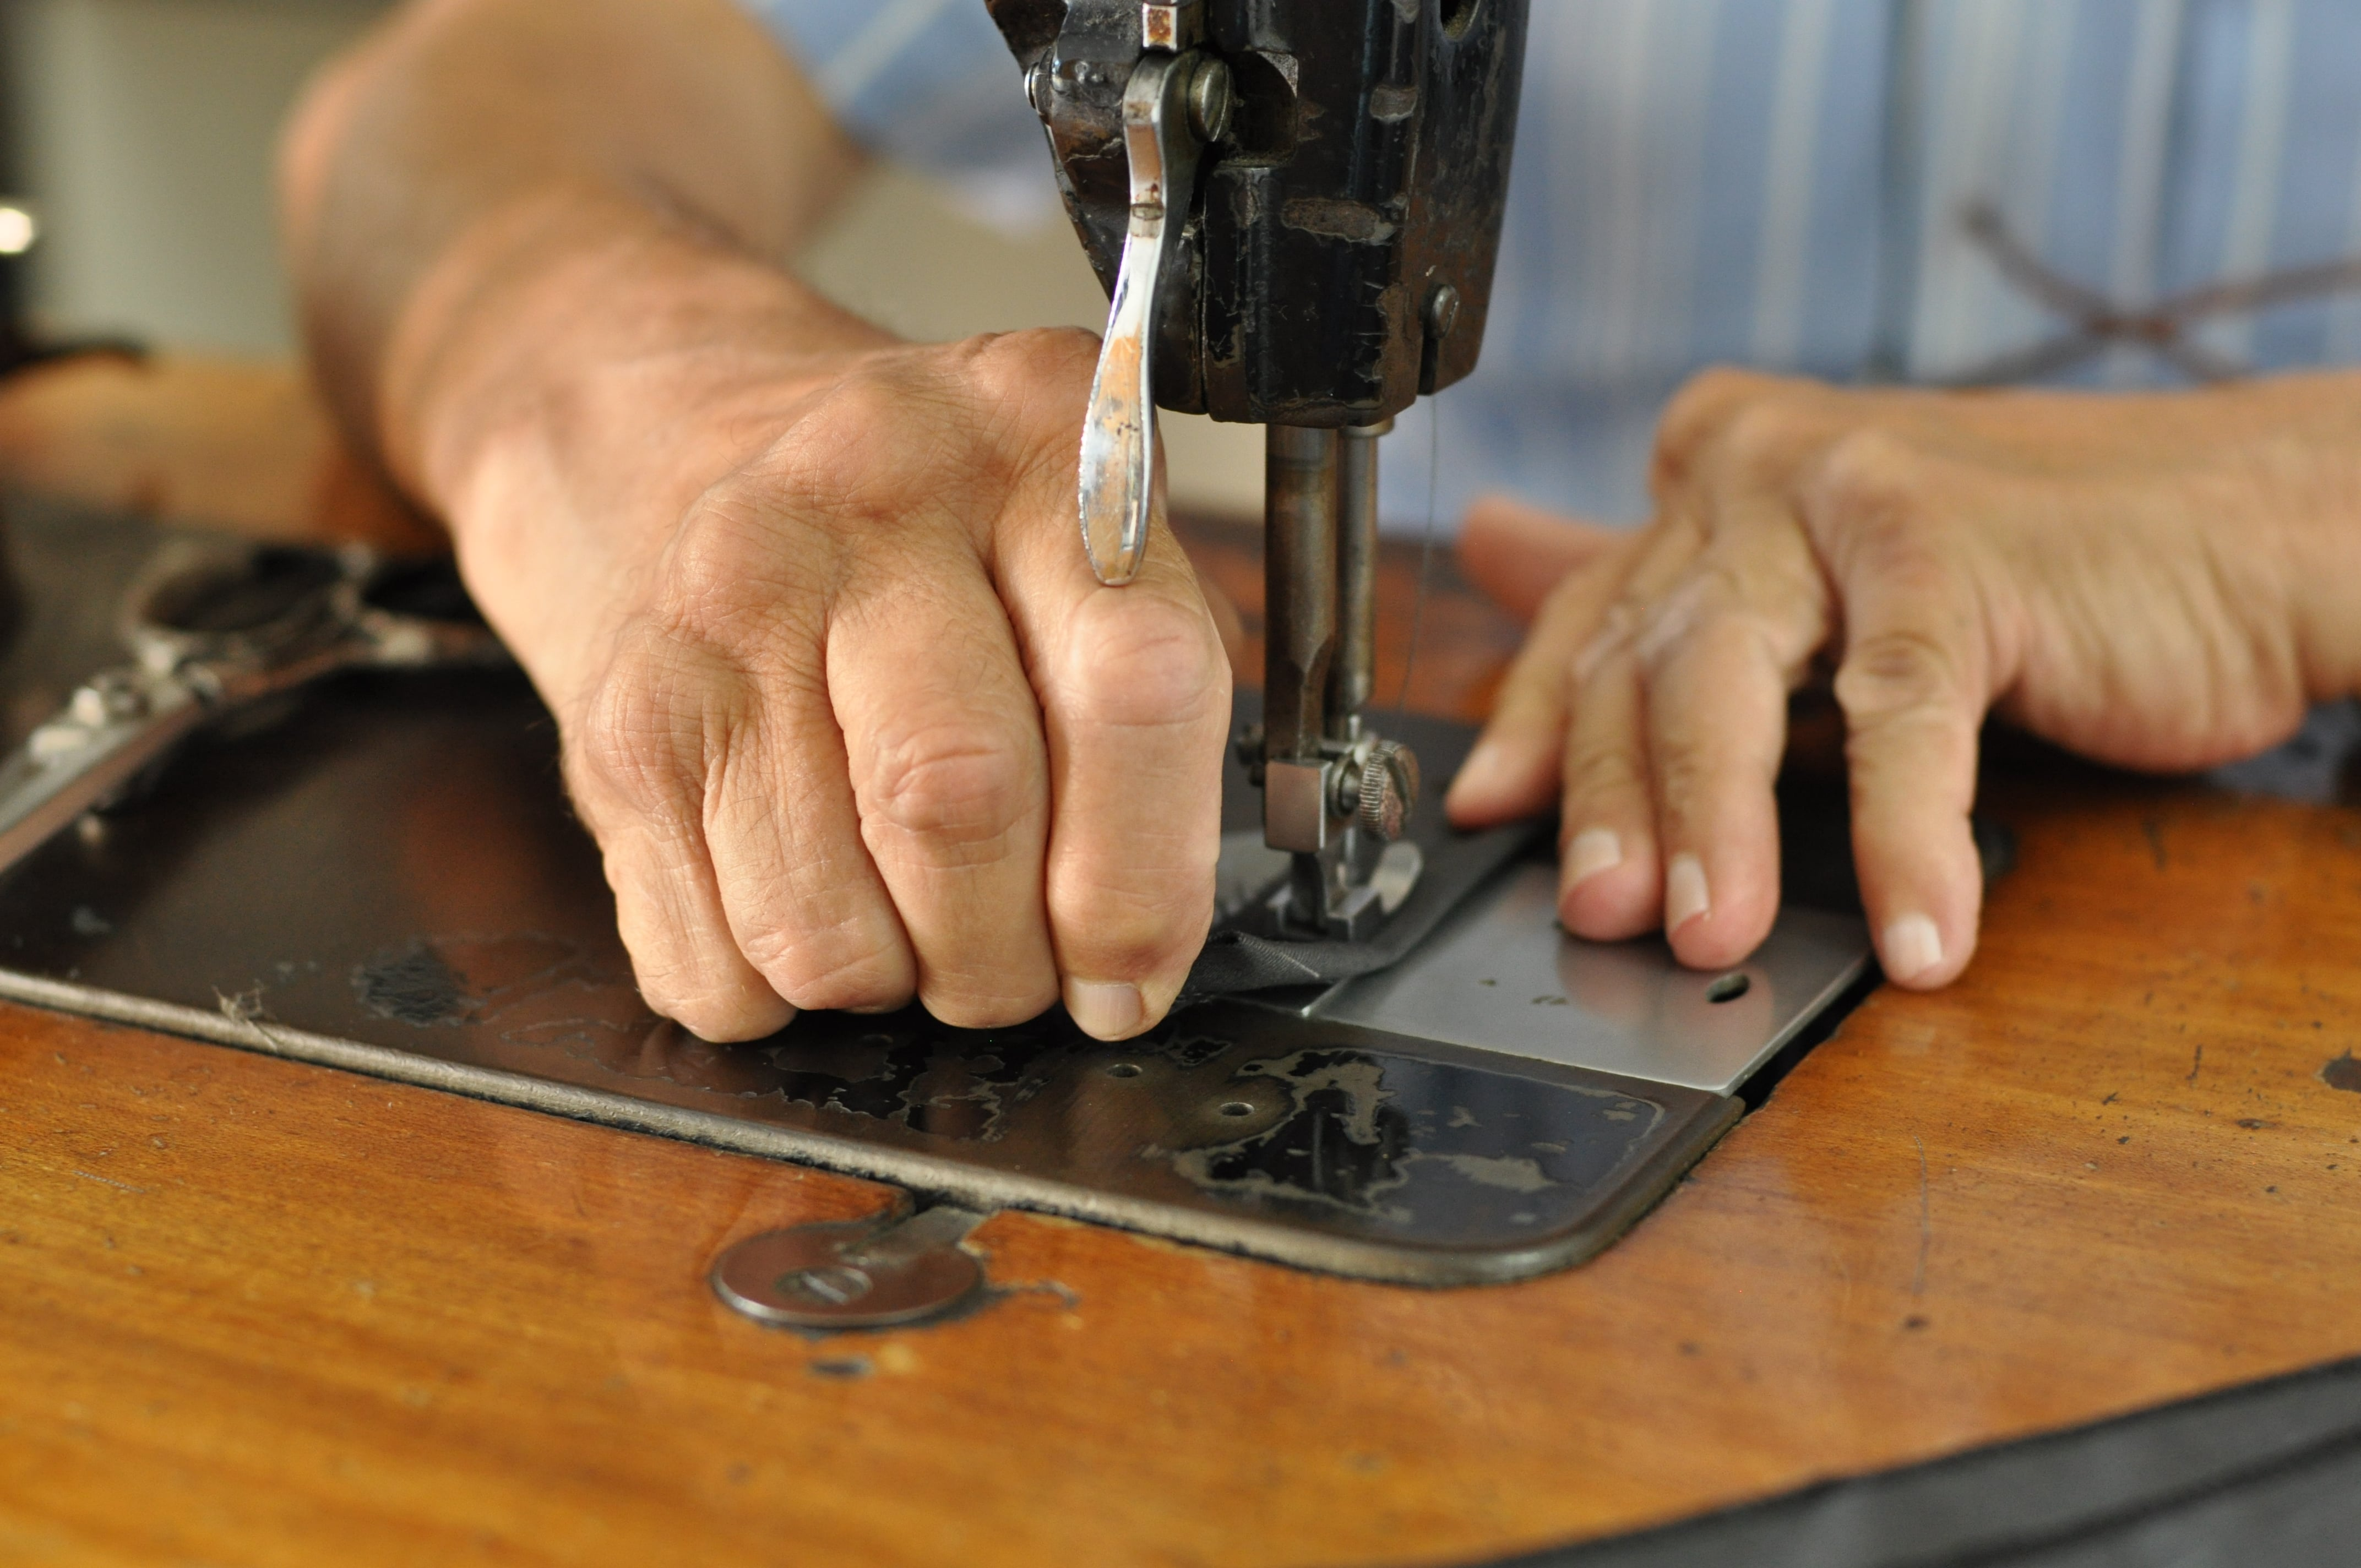 hands working at a sewing machine